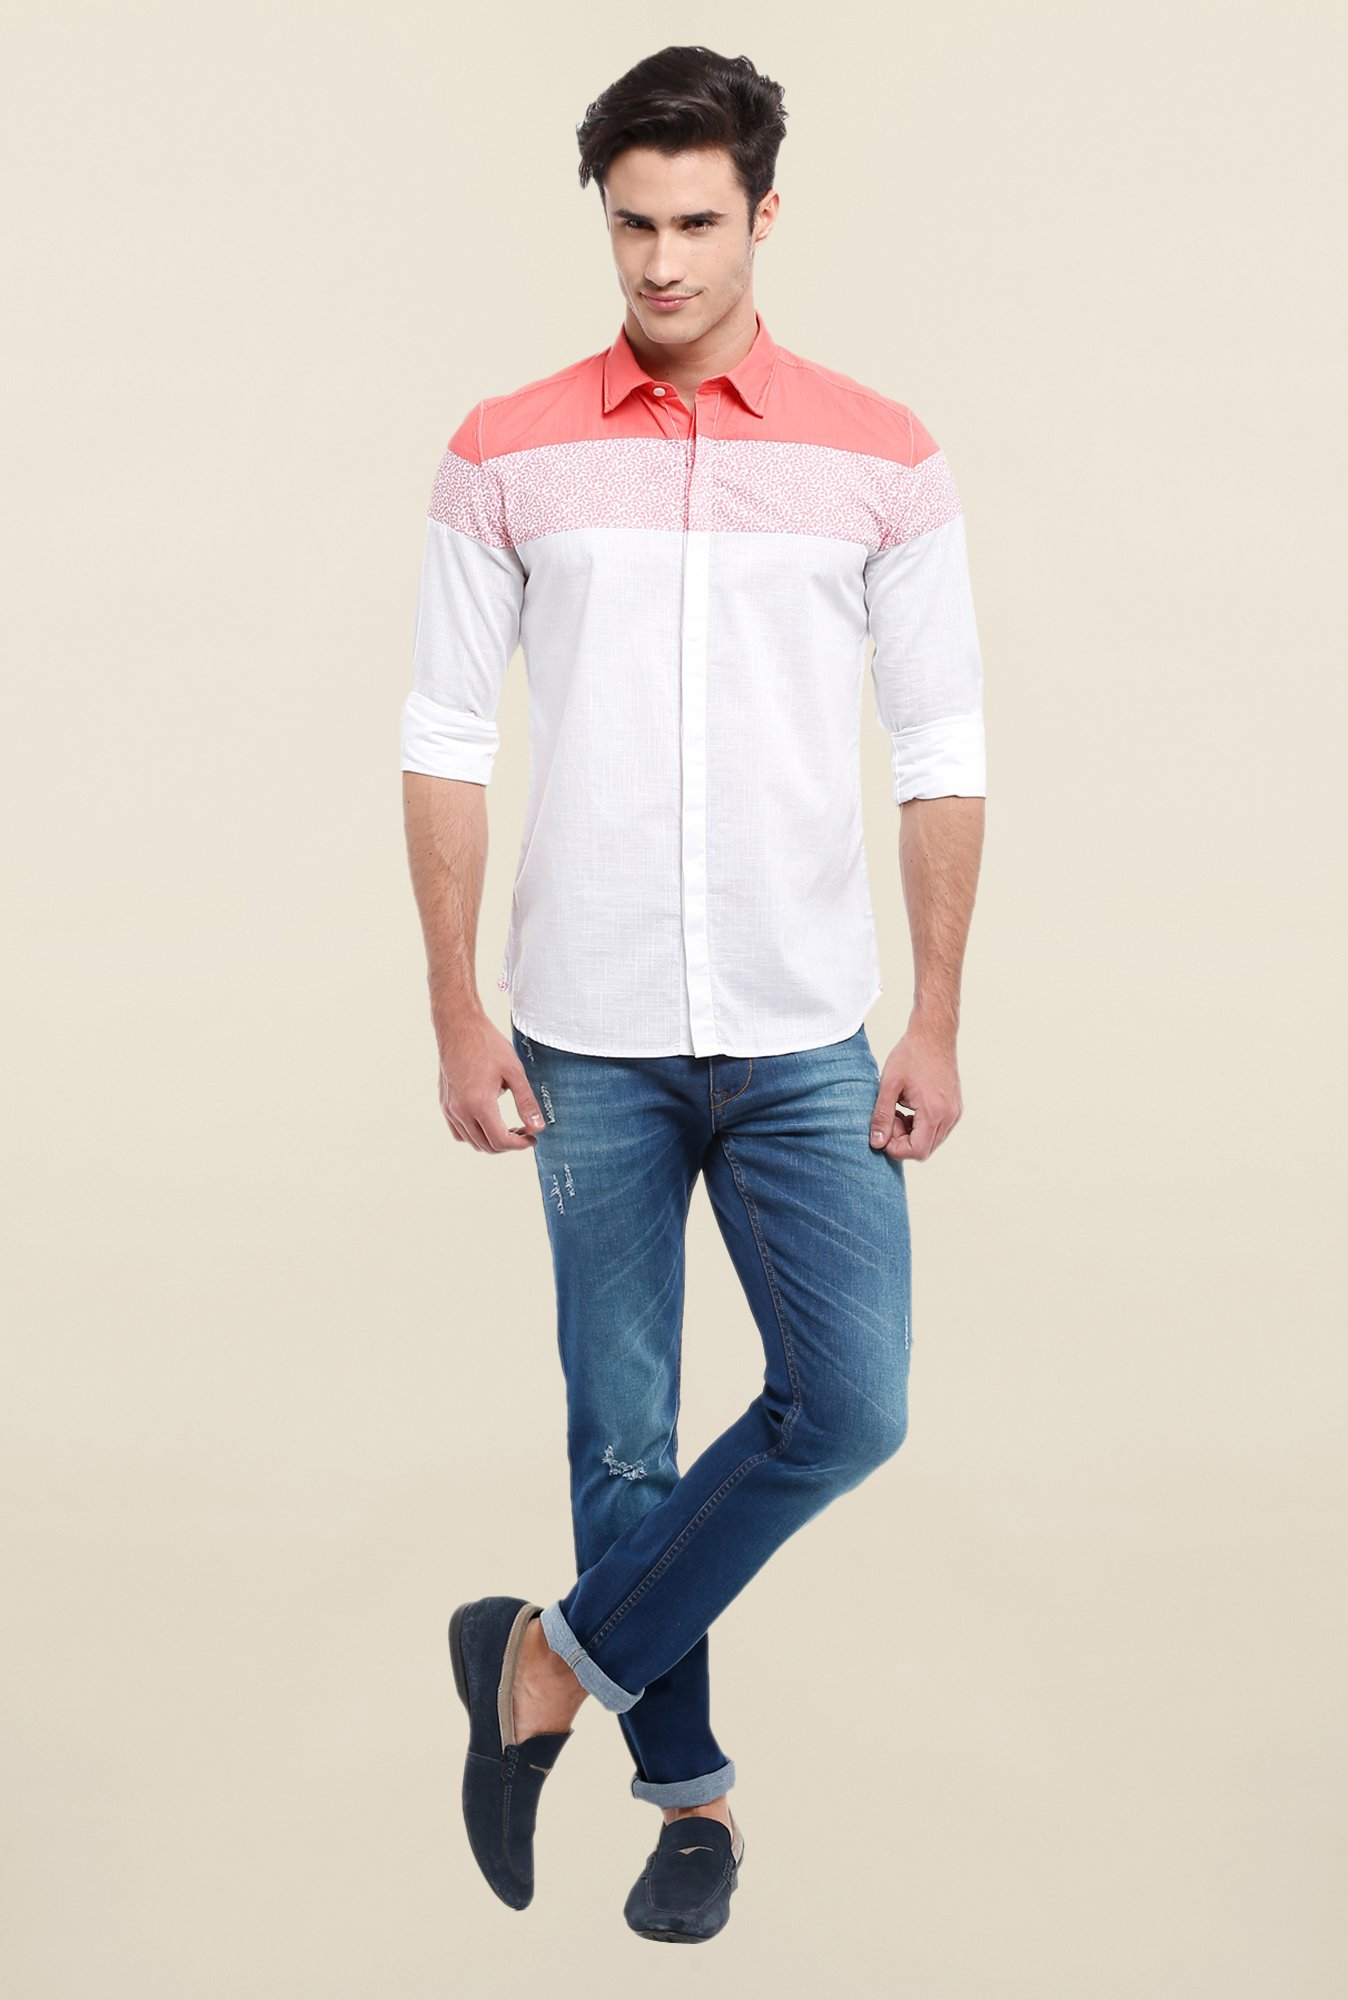 Parx White & Peach Solid Shirt